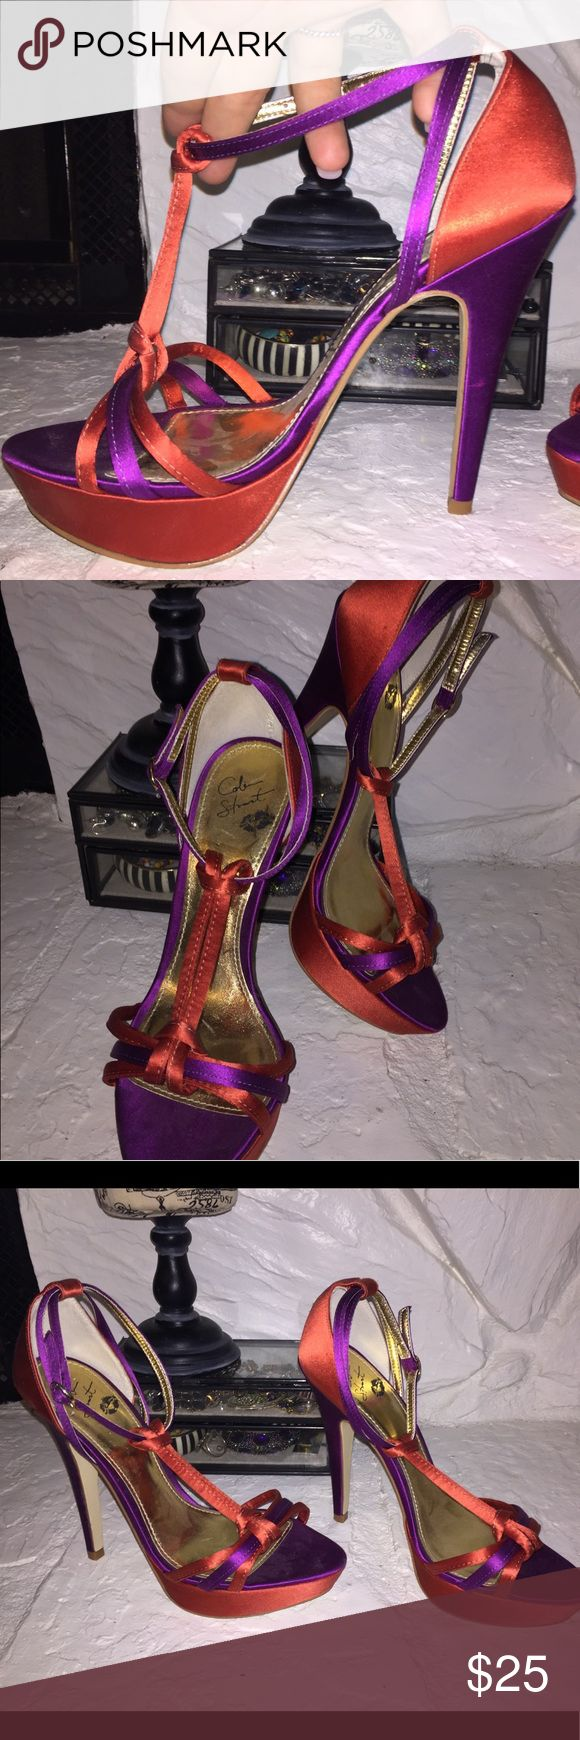 "Colin Stuart Hooker Heels (5"" Rise 😉) NEVER WORN Purple and orange sexy shoes for a fabulous dress!  (Or whatever smokin' outfit you've cooked up!!)  I never found the perfect one.  (Also I'm 5'9"" so I'm not sure I really need to wear a 5"" heel.) pumpkin and passion purple. Colin Stuart Shoes Heels"